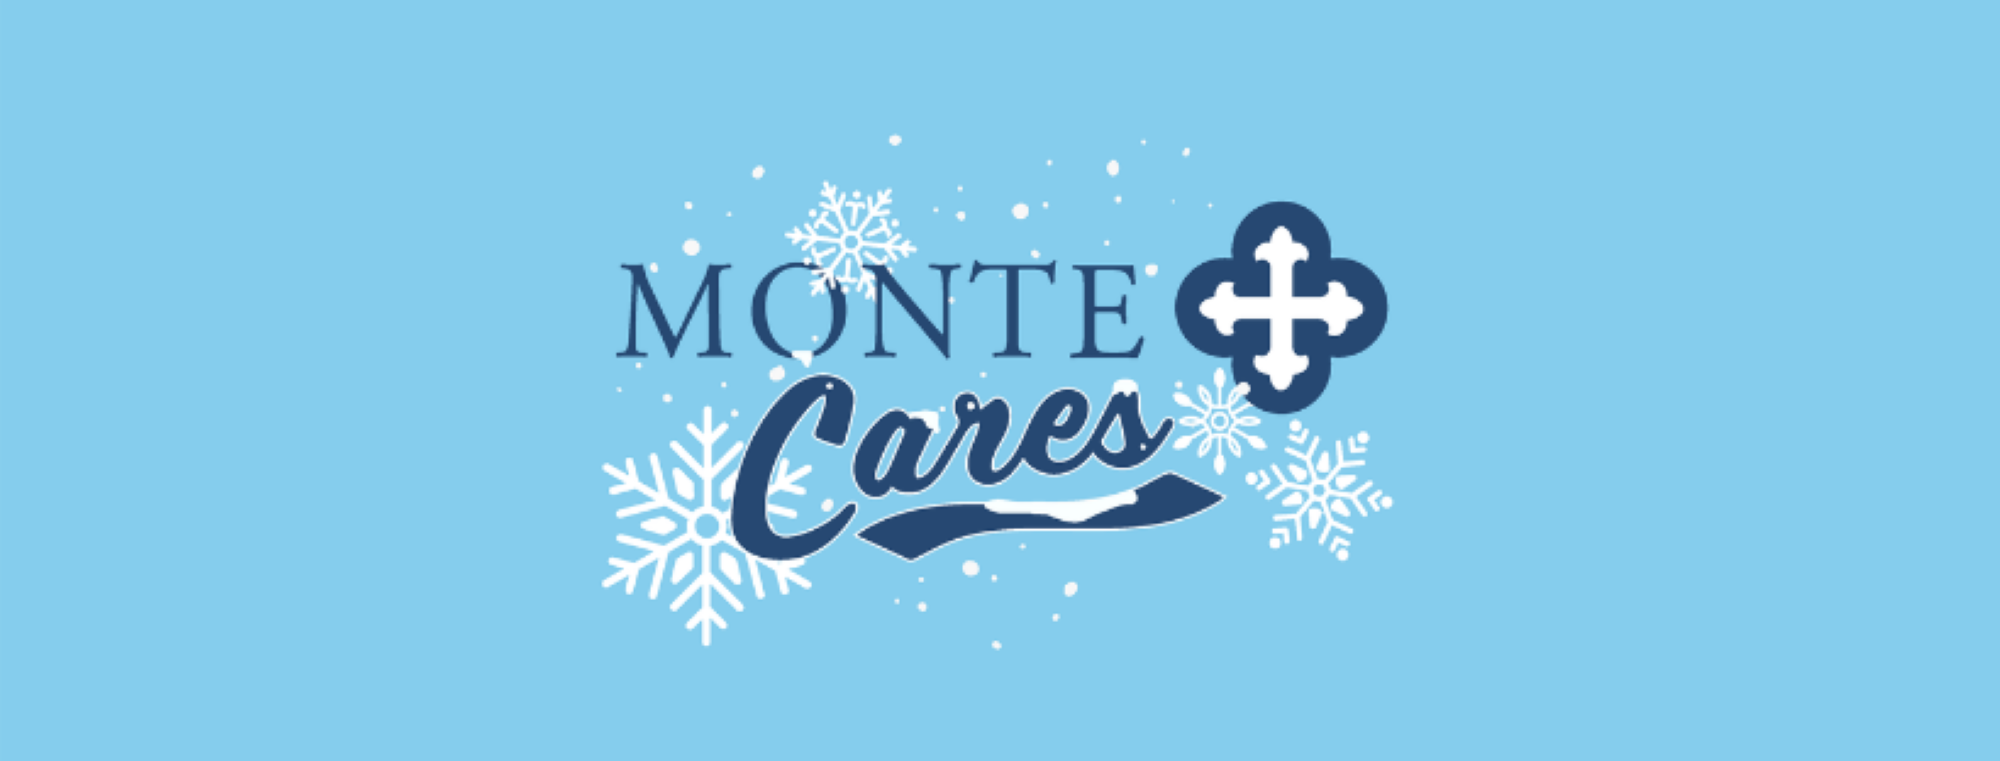 Monte supports our Tulsa community. (1)